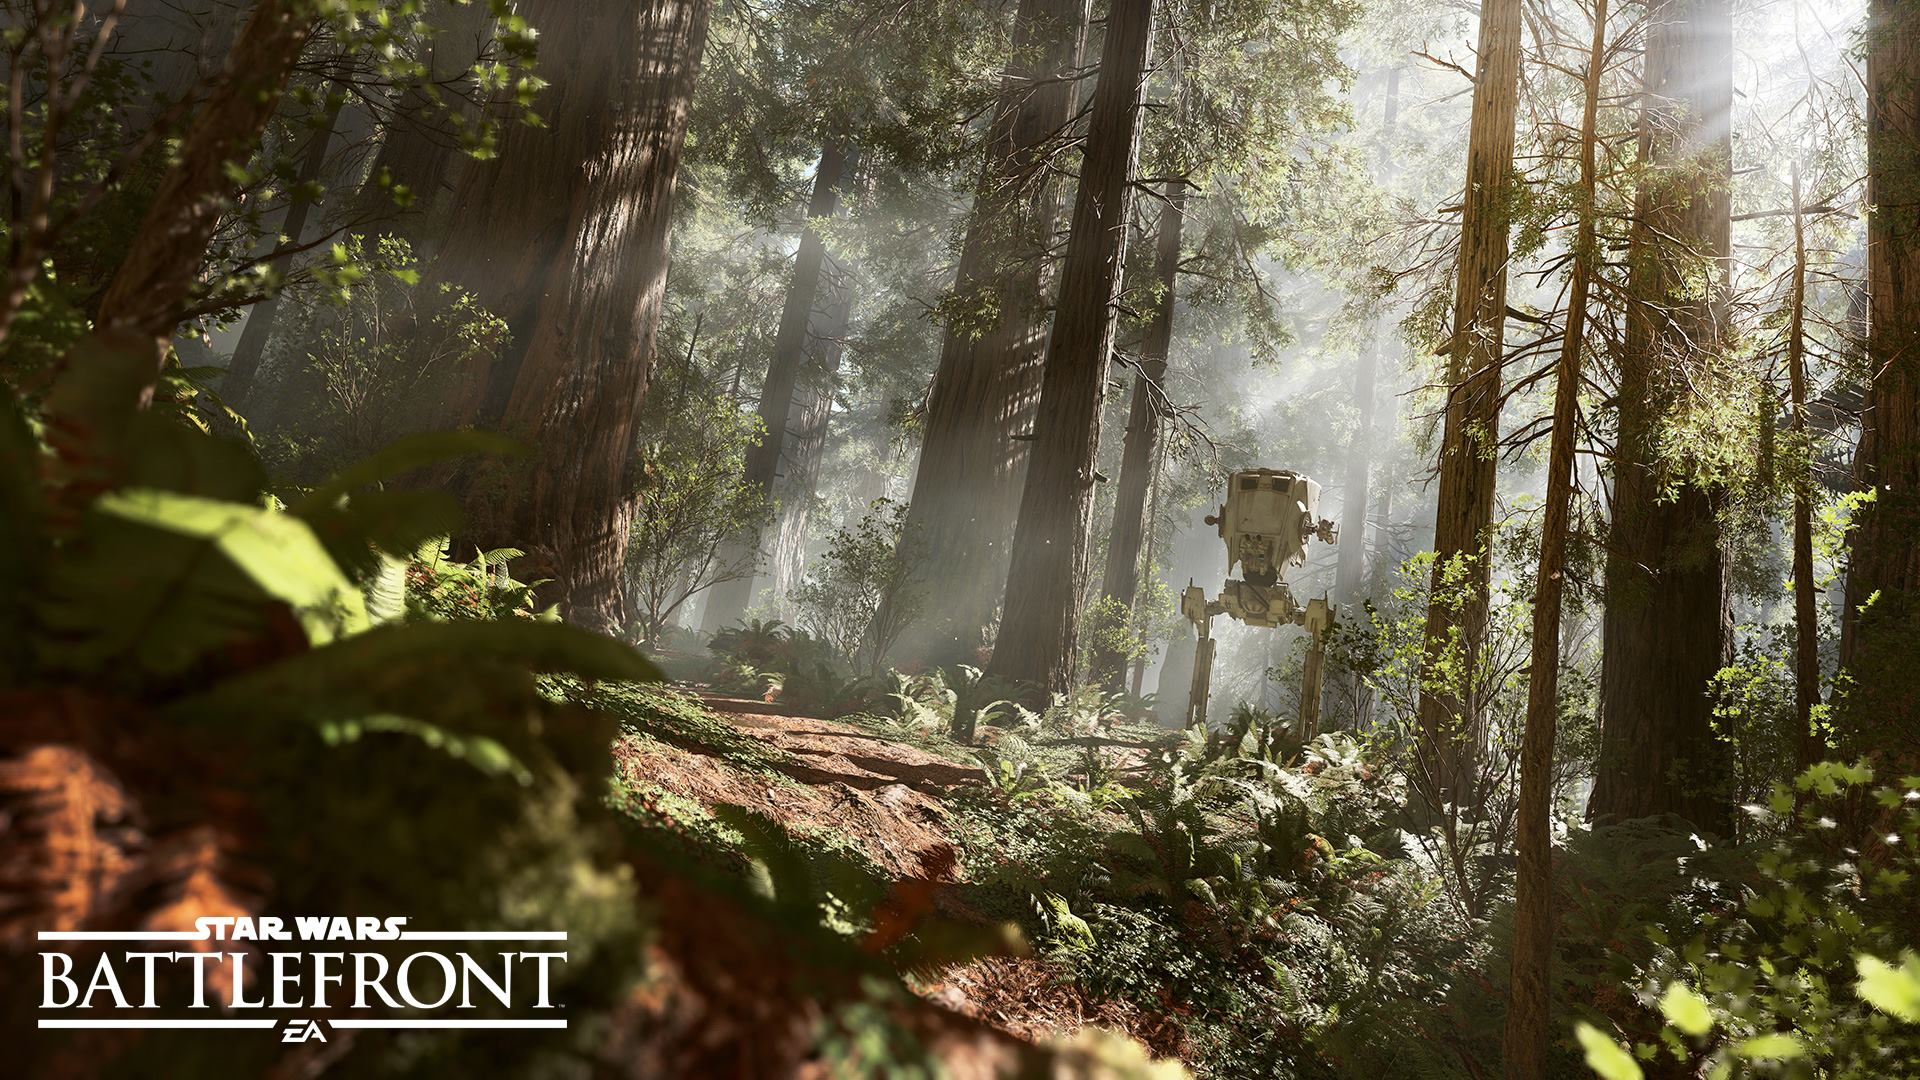 Star Wars Battlefront Gets Awesome New Screenshot Info on Character 1920x1080